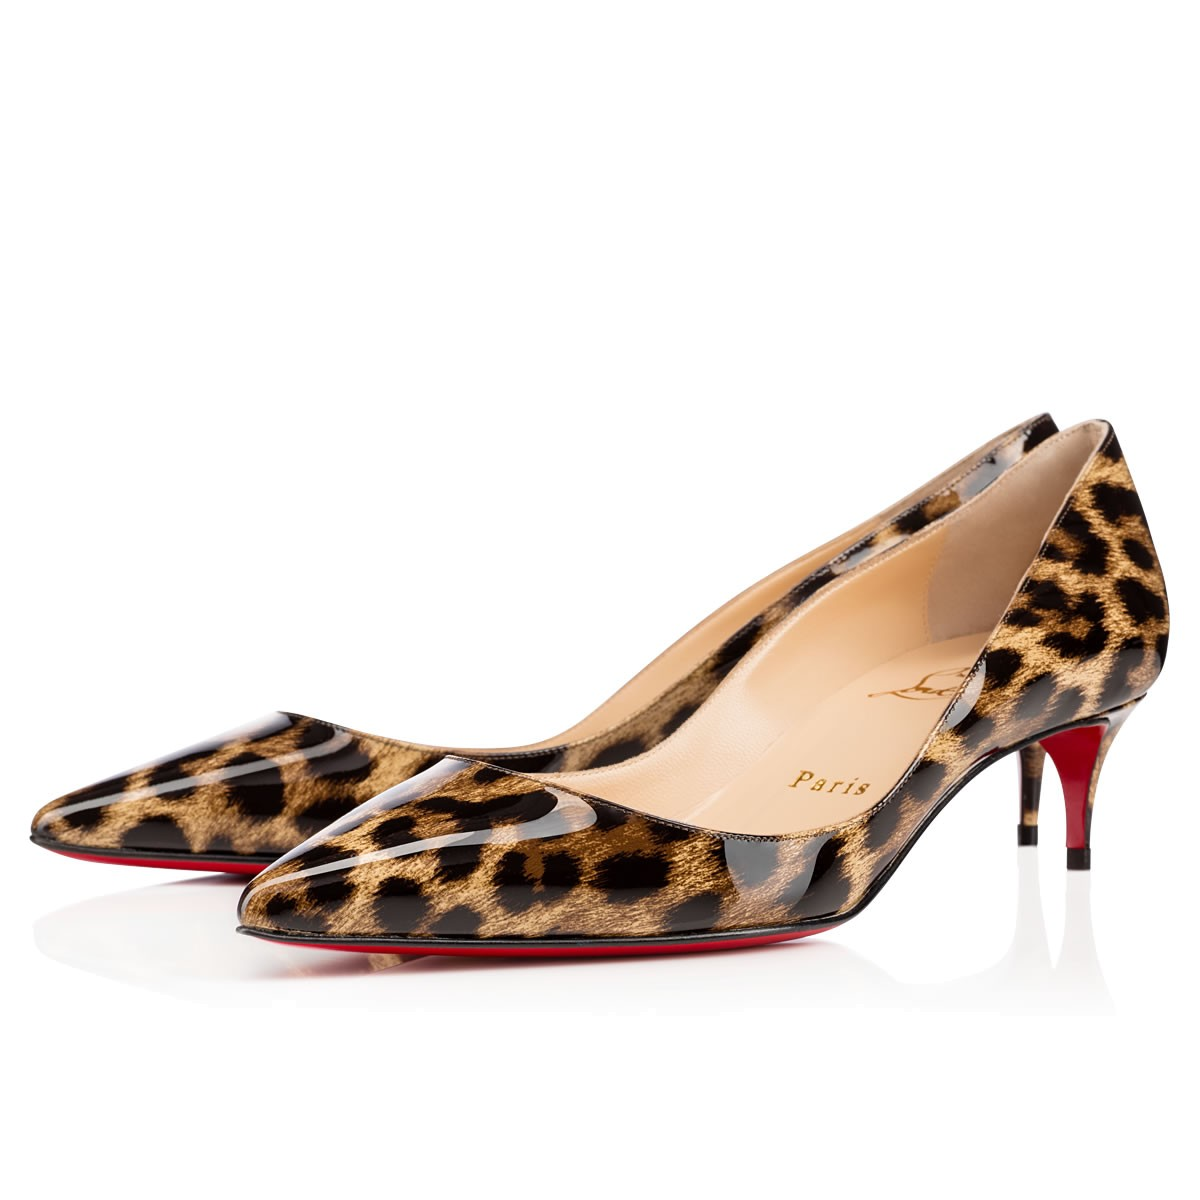 gold christian louboutin shoes - christian louboutin pointed-toe pumps Gold and brown patent ...